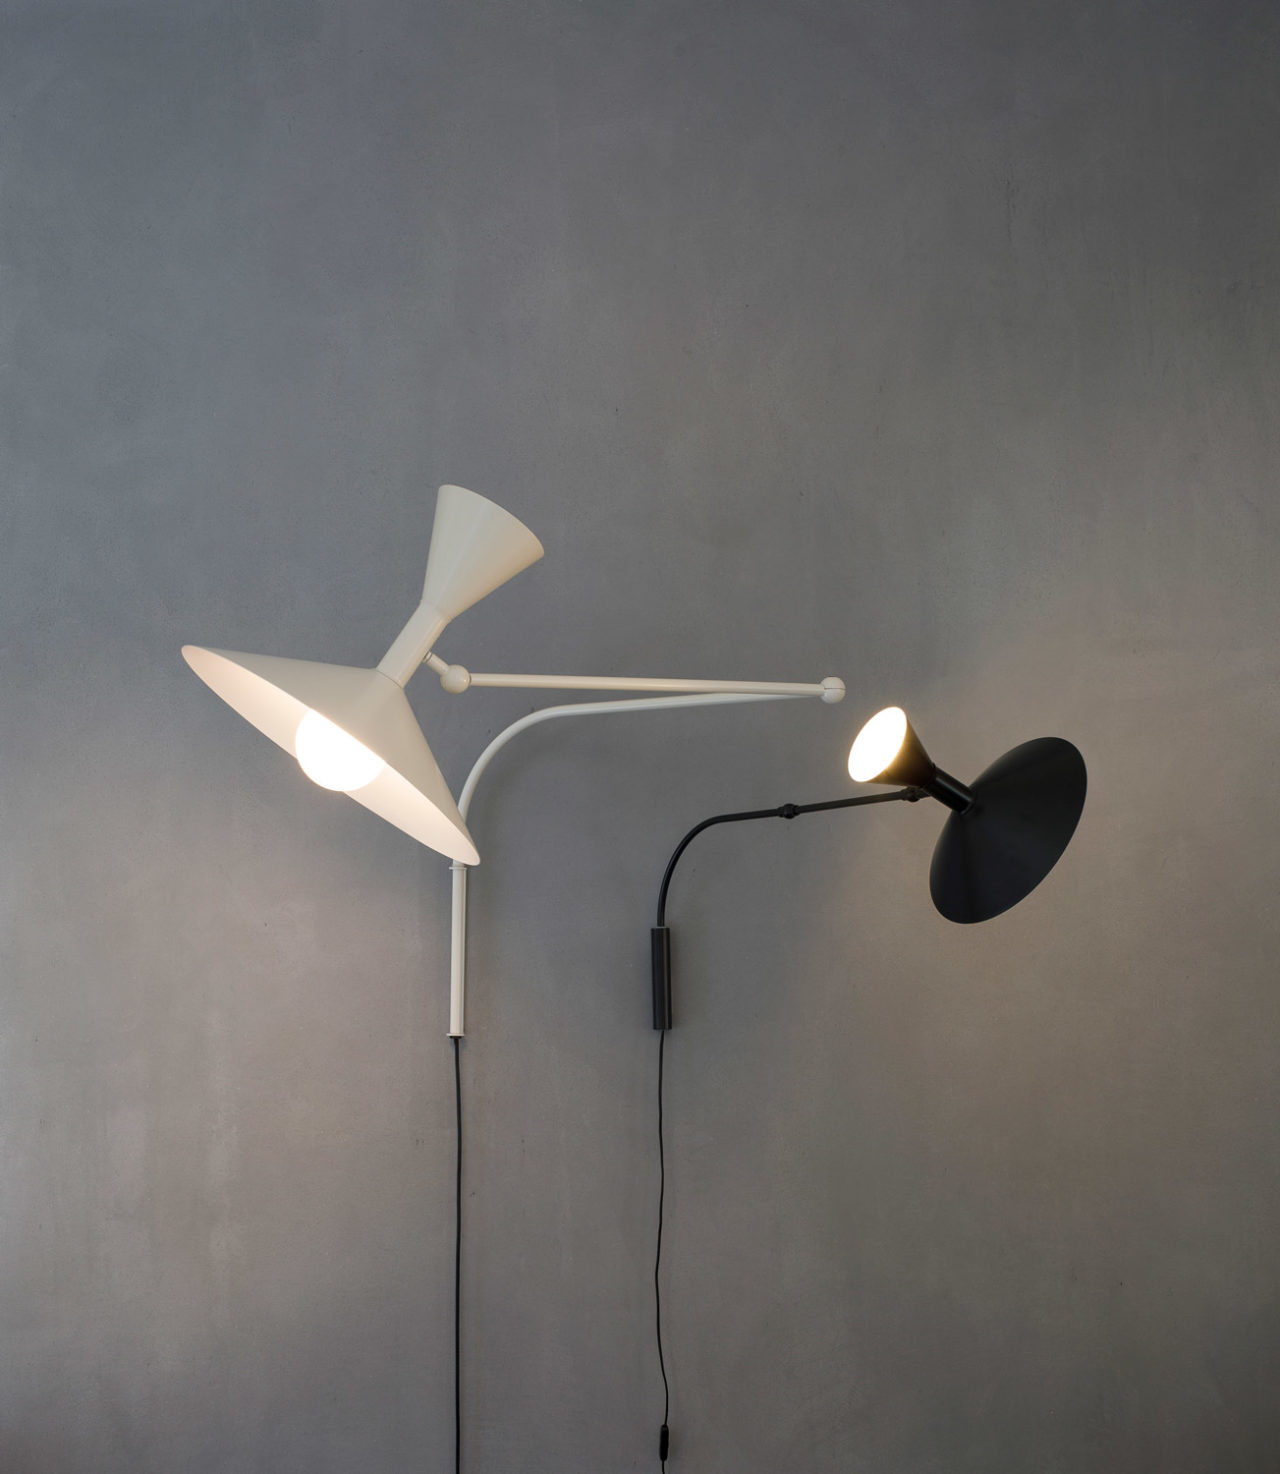 Lampe de Marseille Wall Lamp - <p>Designed by Le Corbusier for the Unité d'Habitation of Marseille in 1949/1952, Lampe de Marseille is an adjustable wall lamp with two joints on the arm and a rotating wall fixing.<br /> Also available in the MINI version with reduced dimensions.<br /> Spun aluminium diffuser. Available with matt grey, whitewash or black body, with white internal diffusers.<br /> Direct and indirect lighting output. Double switch on the cable, for functional and adjustable light output.</p> <p>Prices are with bulb excluded.</p>  | Matter of Stuff